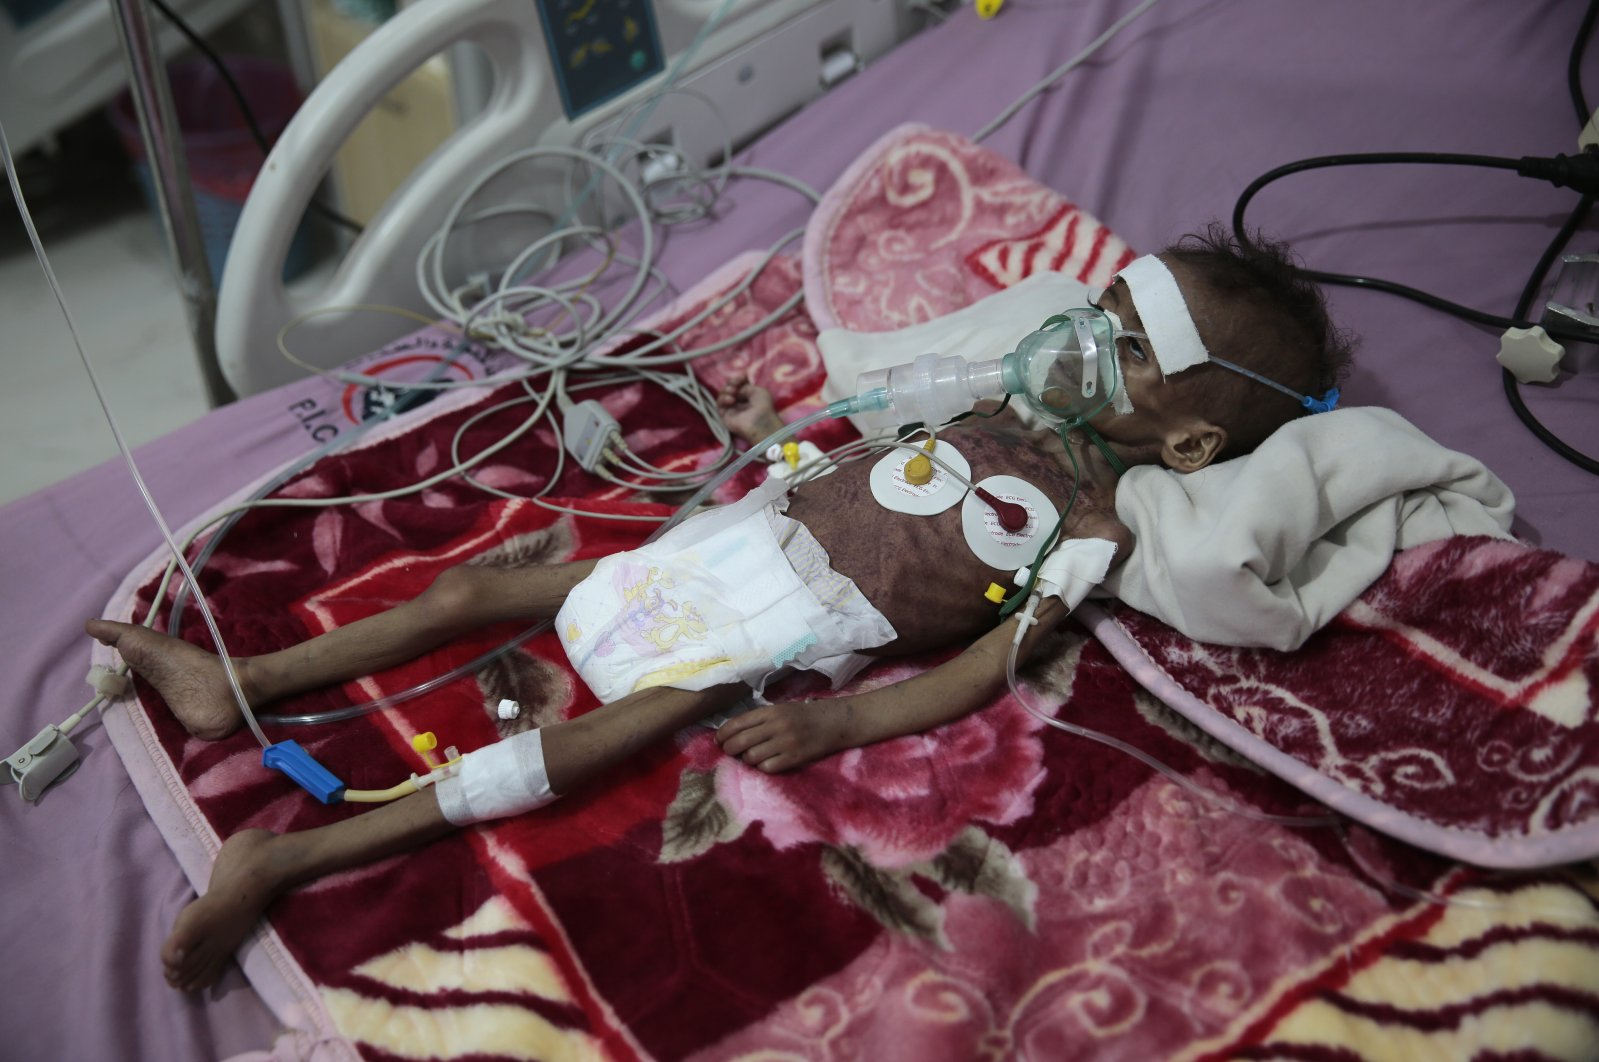 A malnourished girl, Rahmah Watheeq, receives treatment at a feeding center at Al-Sabeen hospital in Sanaa, Yemen, Nov. 3, 2020.  Two-thirds of Yemen's population of about 28 million people are hungry, and nearly 1.5 million families currently rely entirely on food aid to survive. Another million people are set to fall into crisis levels of hunger before the end of the year, according to aid agencies working in Yemen. (AP Photo/Hani Mohammed)